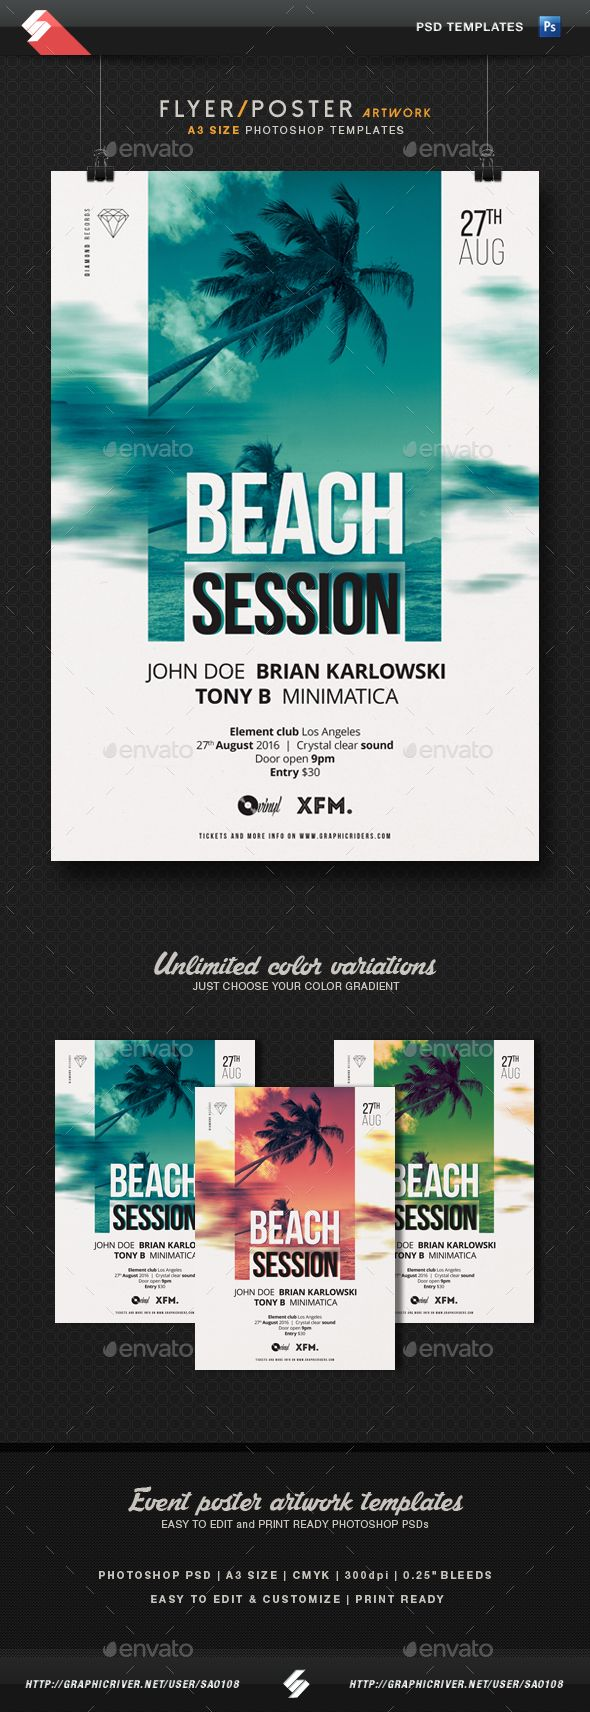 Summer Beach Session - Party Flyer / Poster Template A3 - Clubs & Parties Events